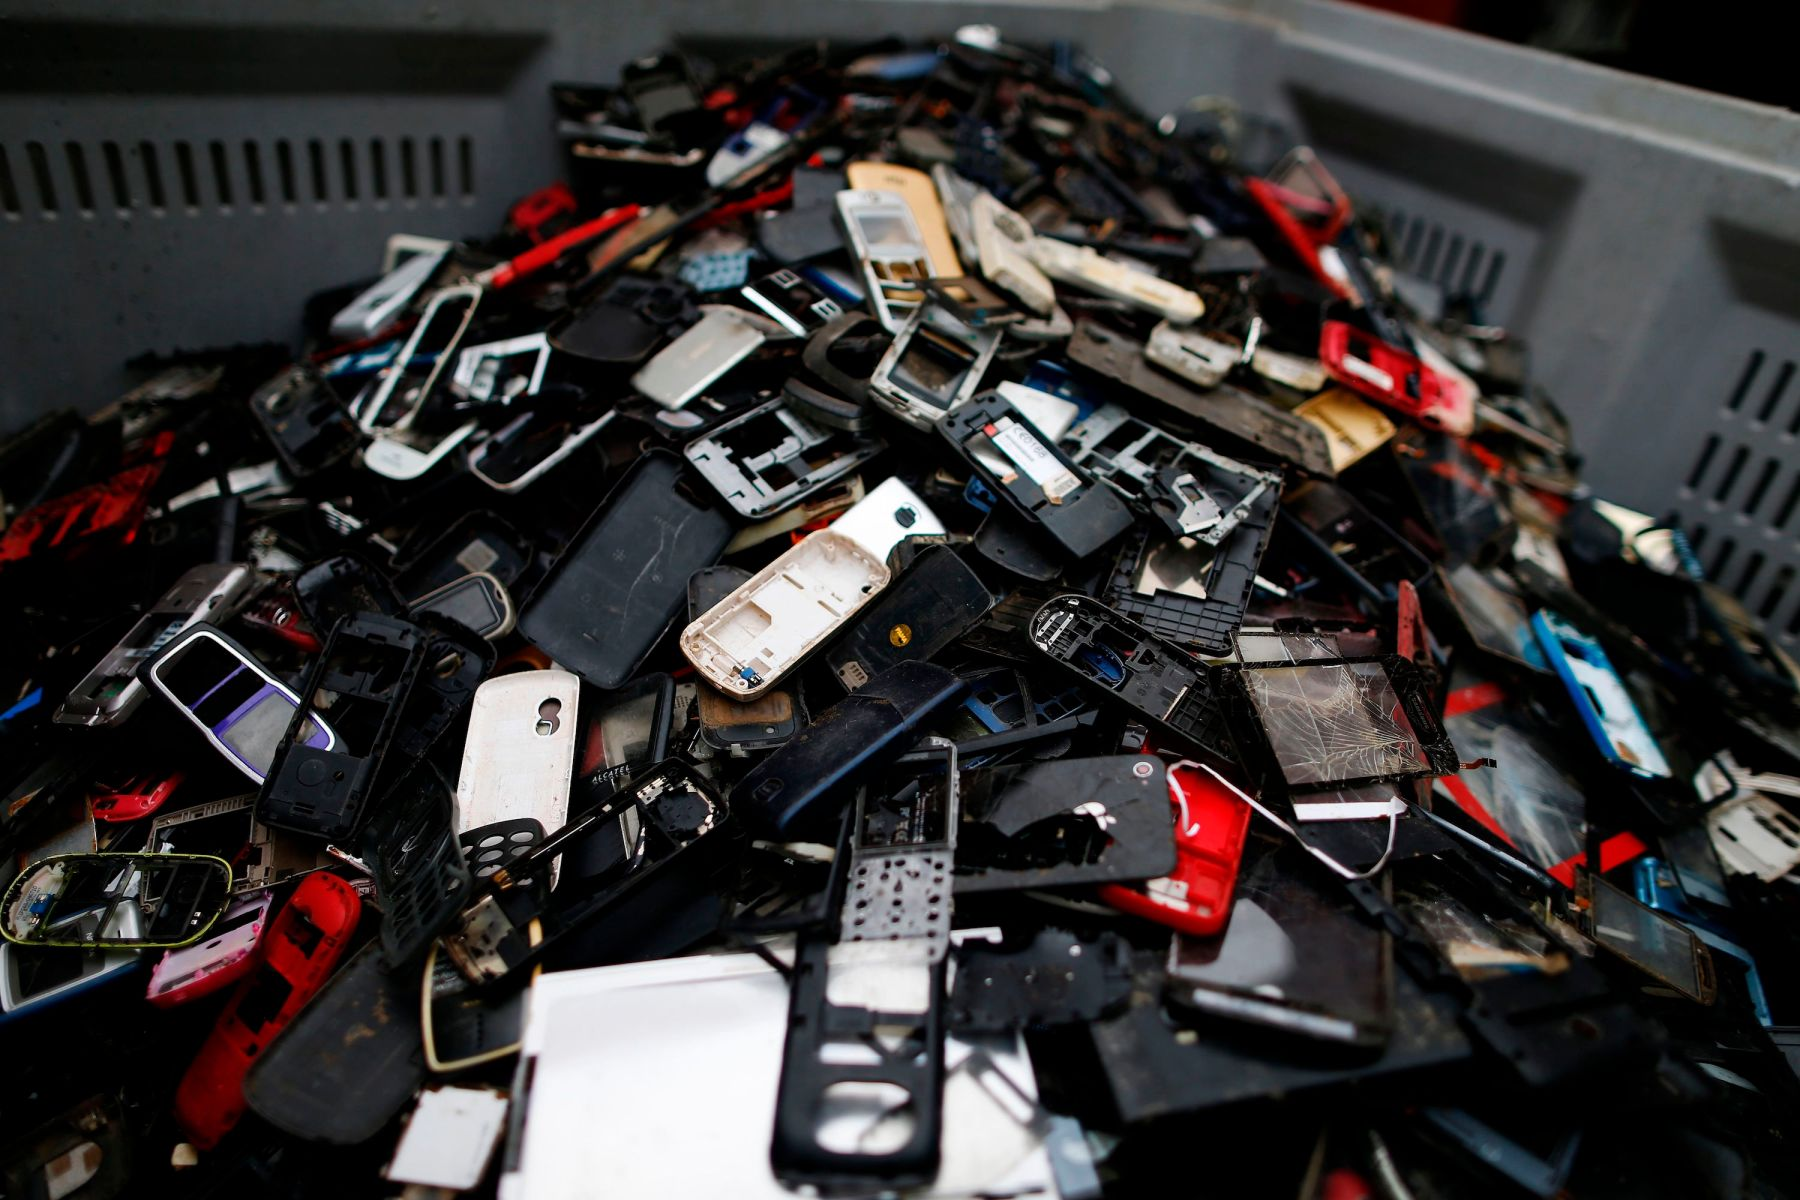 This photo taken on May 3, 2017 at Morphosis plant in Le Havre, northwestern France, shows a pile of discarded electrical and electronic components. Morphosis extracts and refines rare and precious metals from electrical and electronic devices in Europe.  / AFP PHOTO / CHARLY TRIBALLEAU        (Photo credit should read CHARLY TRIBALLEAU/AFP/Getty Images)